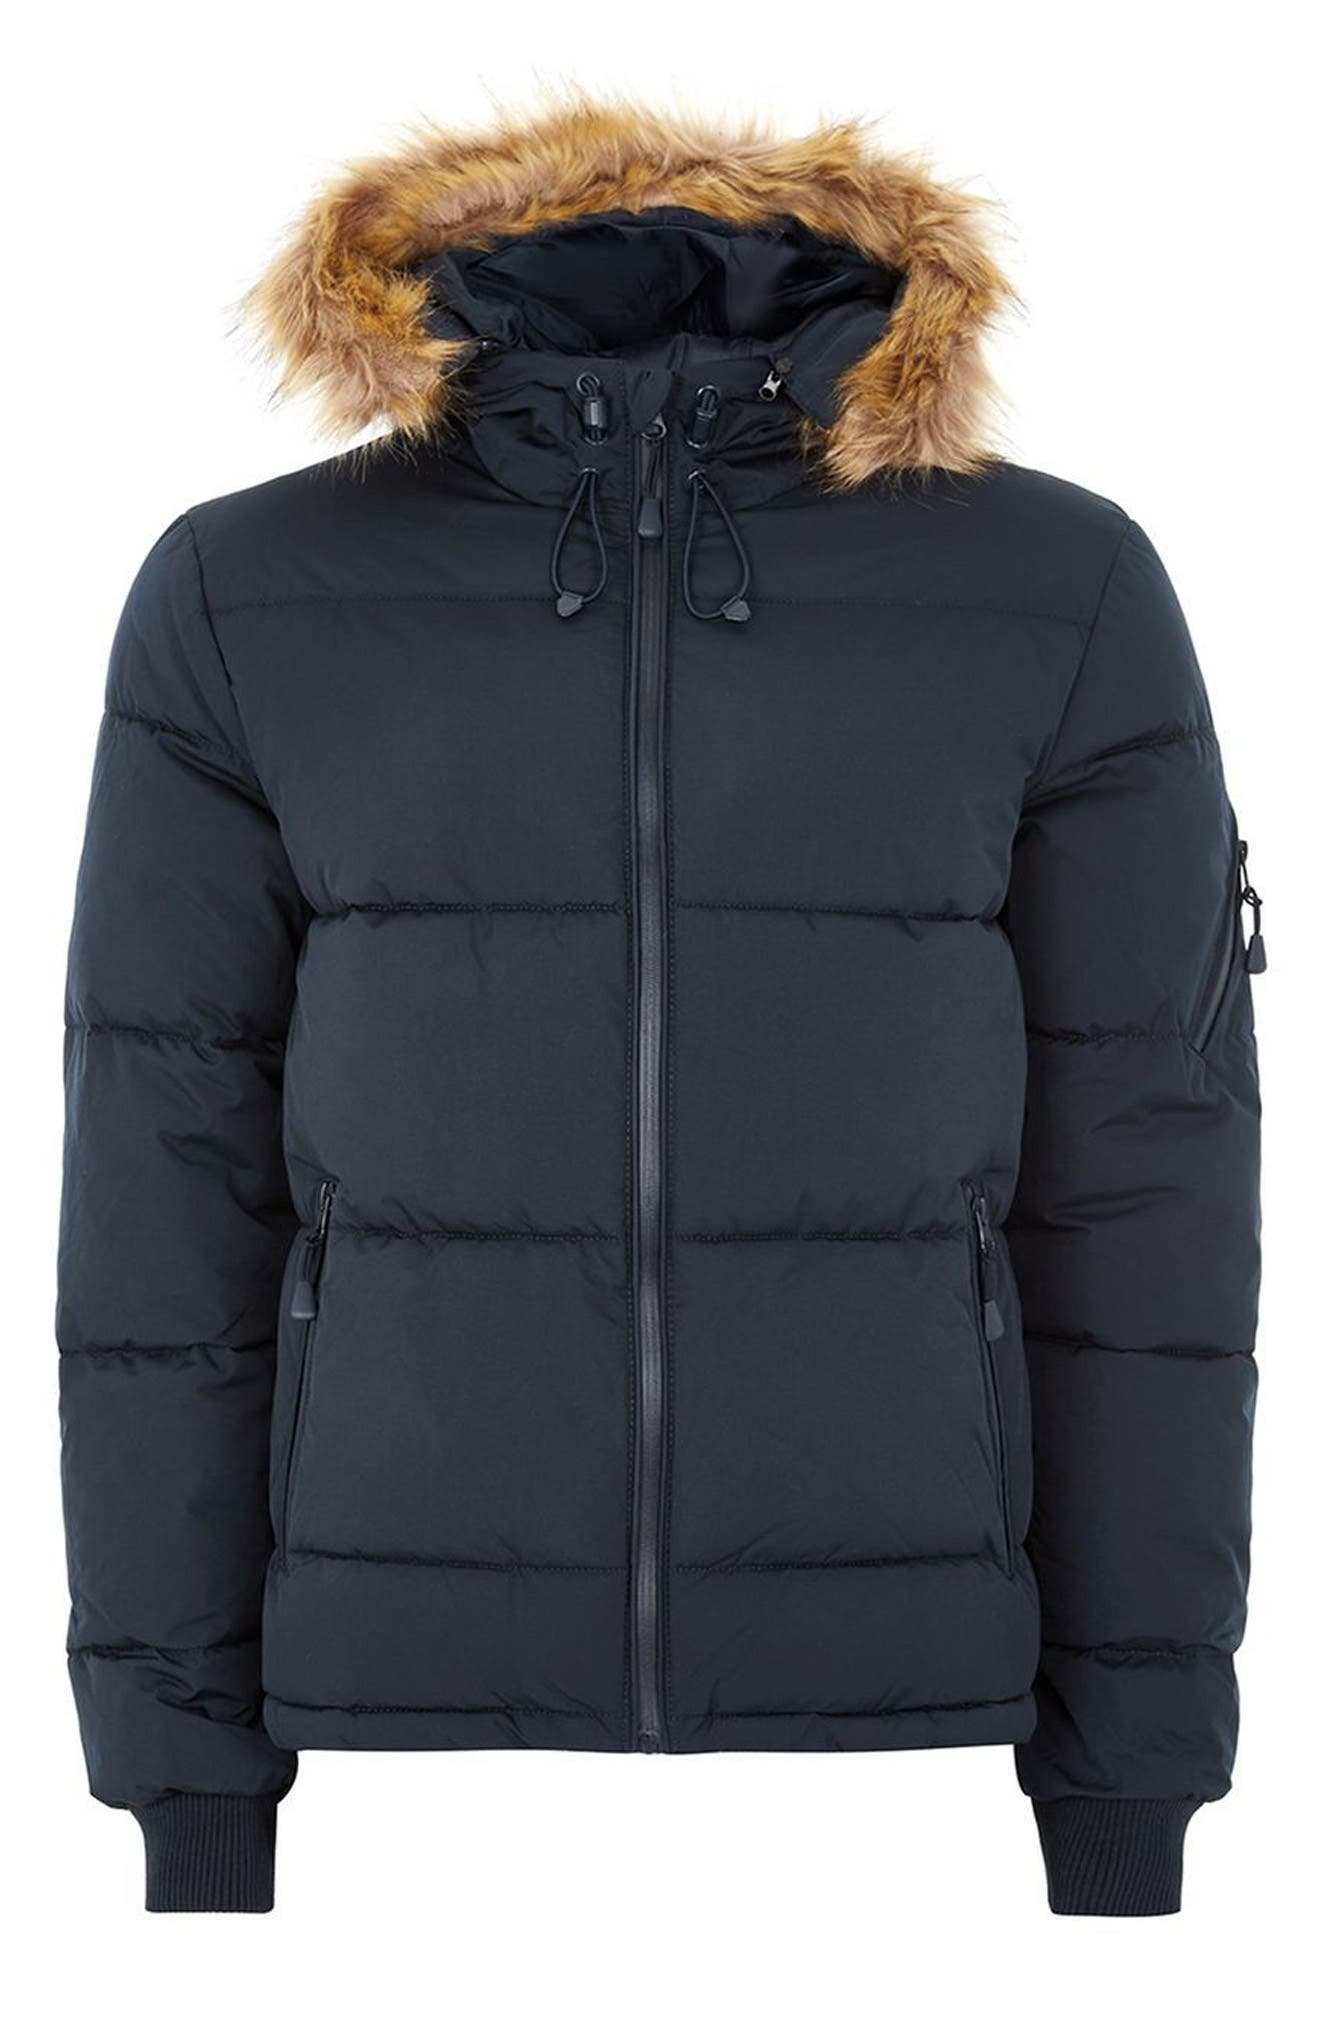 Maguire Hooded Puffer Coat with Faux Fur Trim,                             Alternate thumbnail 4, color,                             Navy Blue